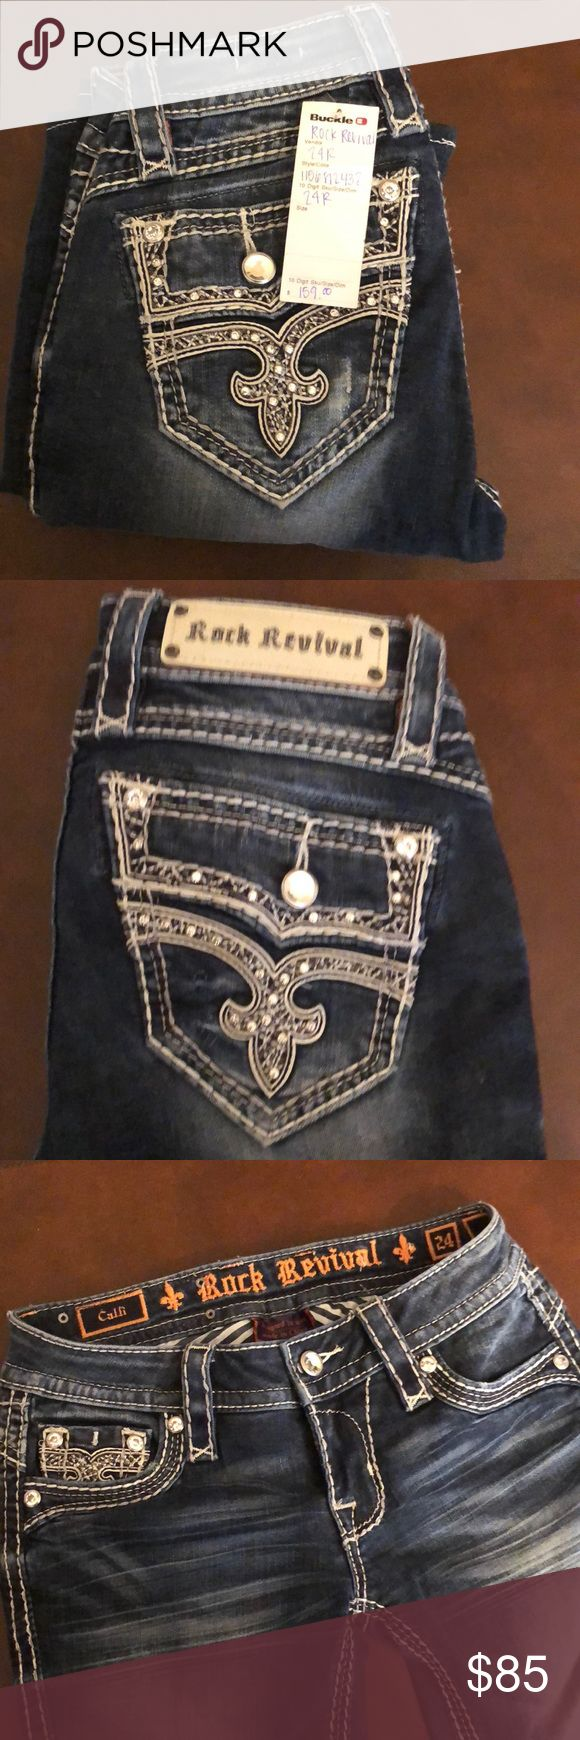 Rock revival women's jeans size 24 Brand new pair of rock revival women's jeans size 24 original price $160 new with tag Rock Revival Jeans Flare & Wide Leg